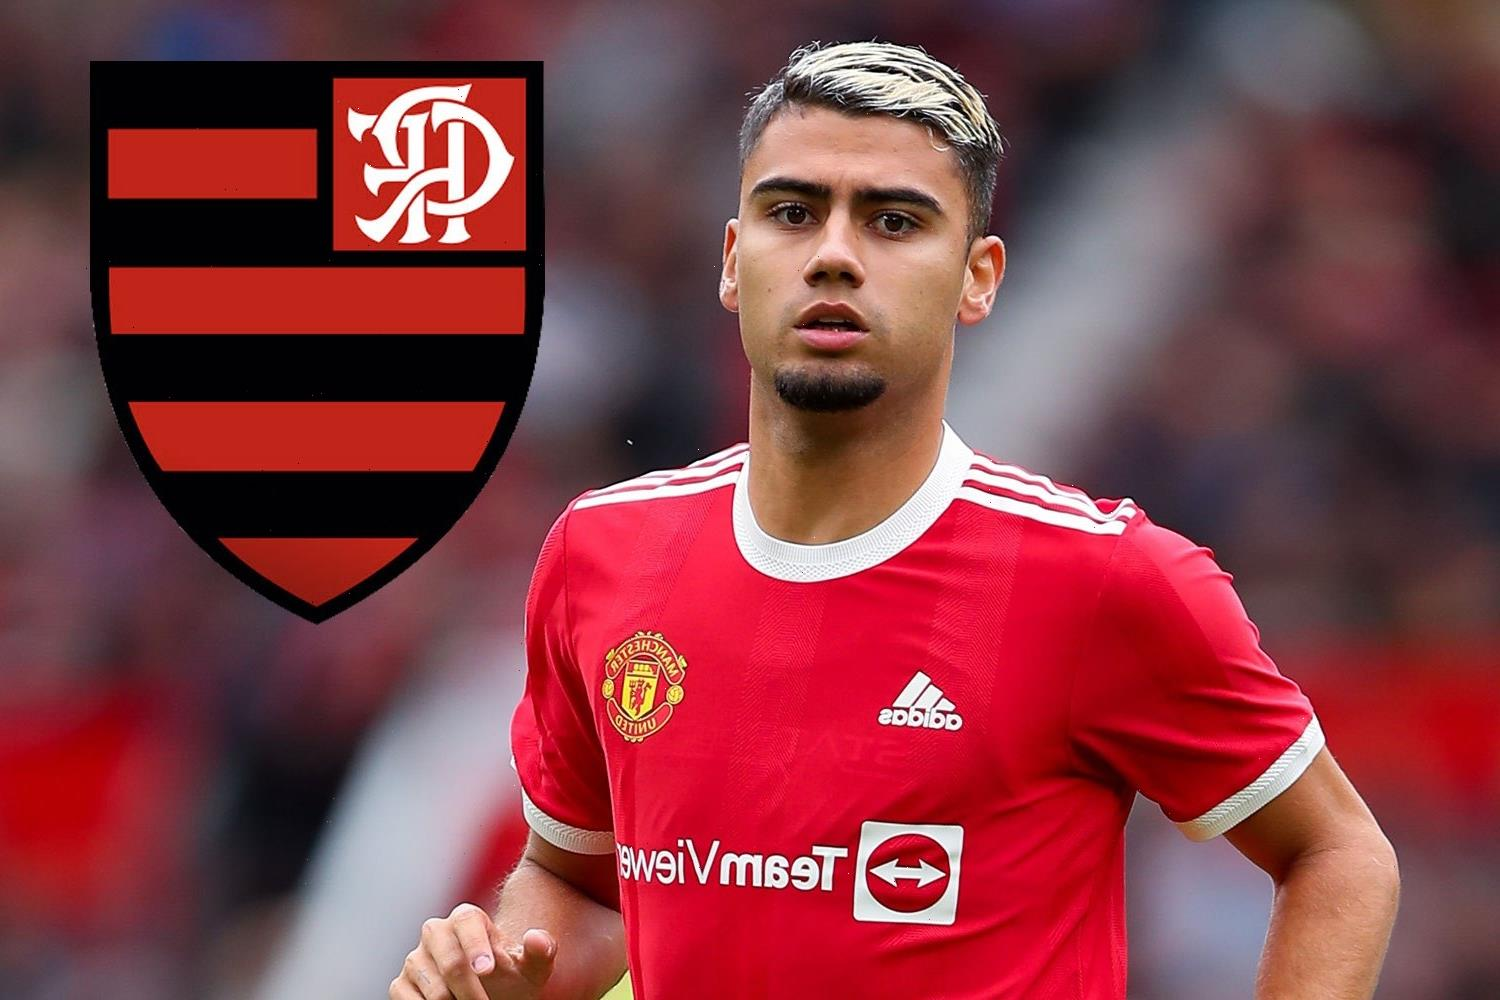 Man Utd outcast Andreas Periera flying to Brazil today to complete Flamengo loan transfer with £17m option to buy